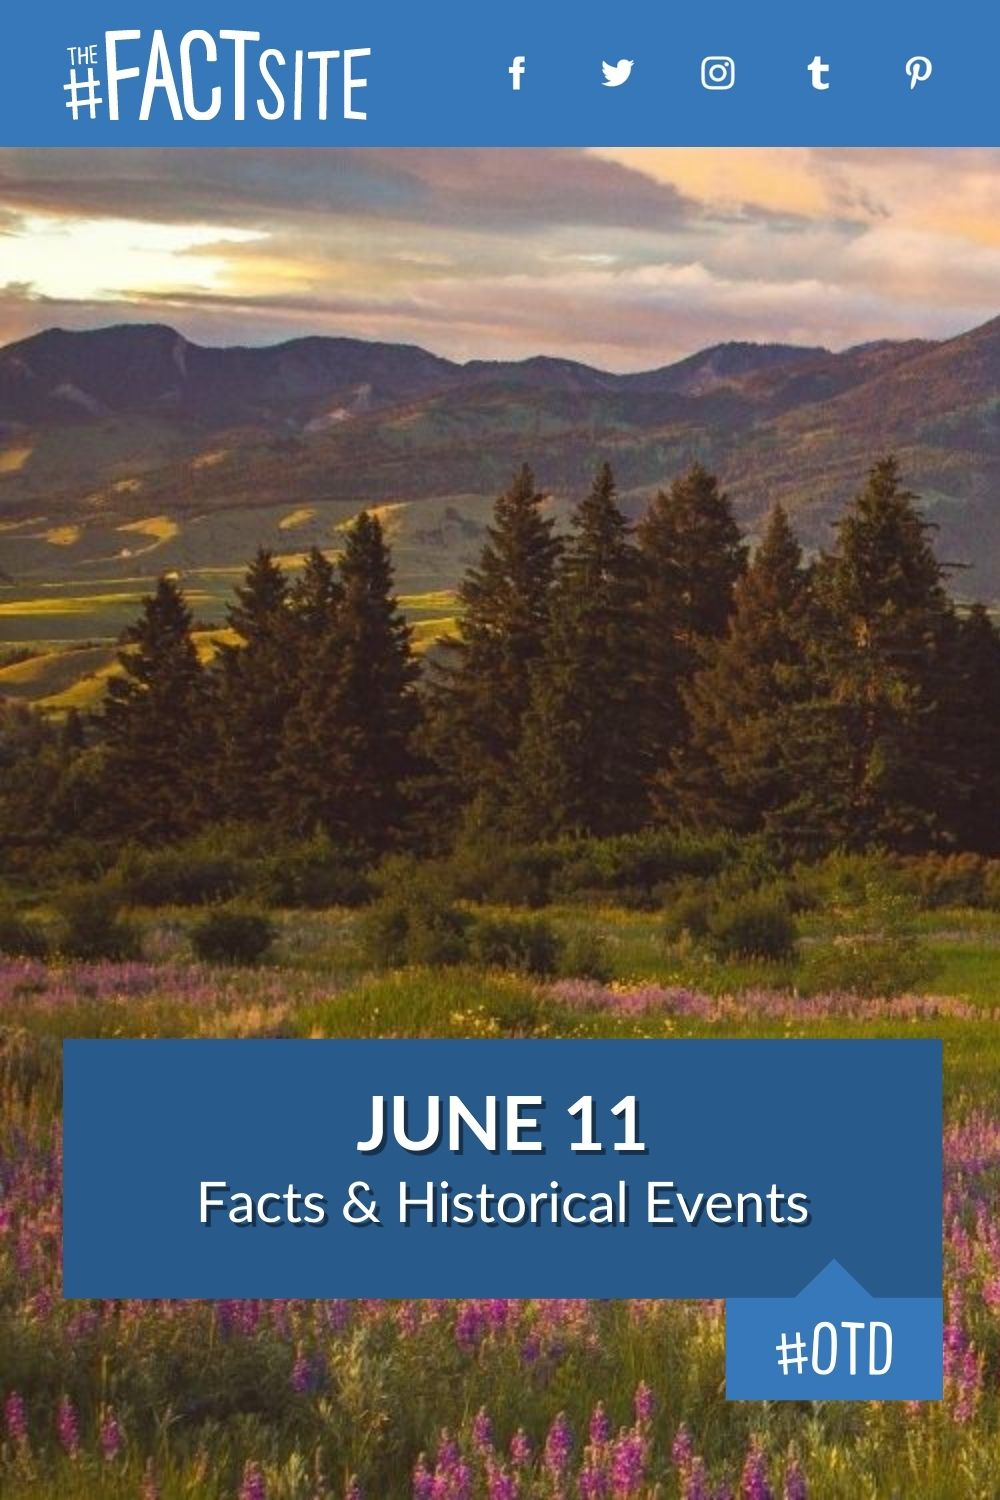 Facts & Historic Events That Happened on June 11